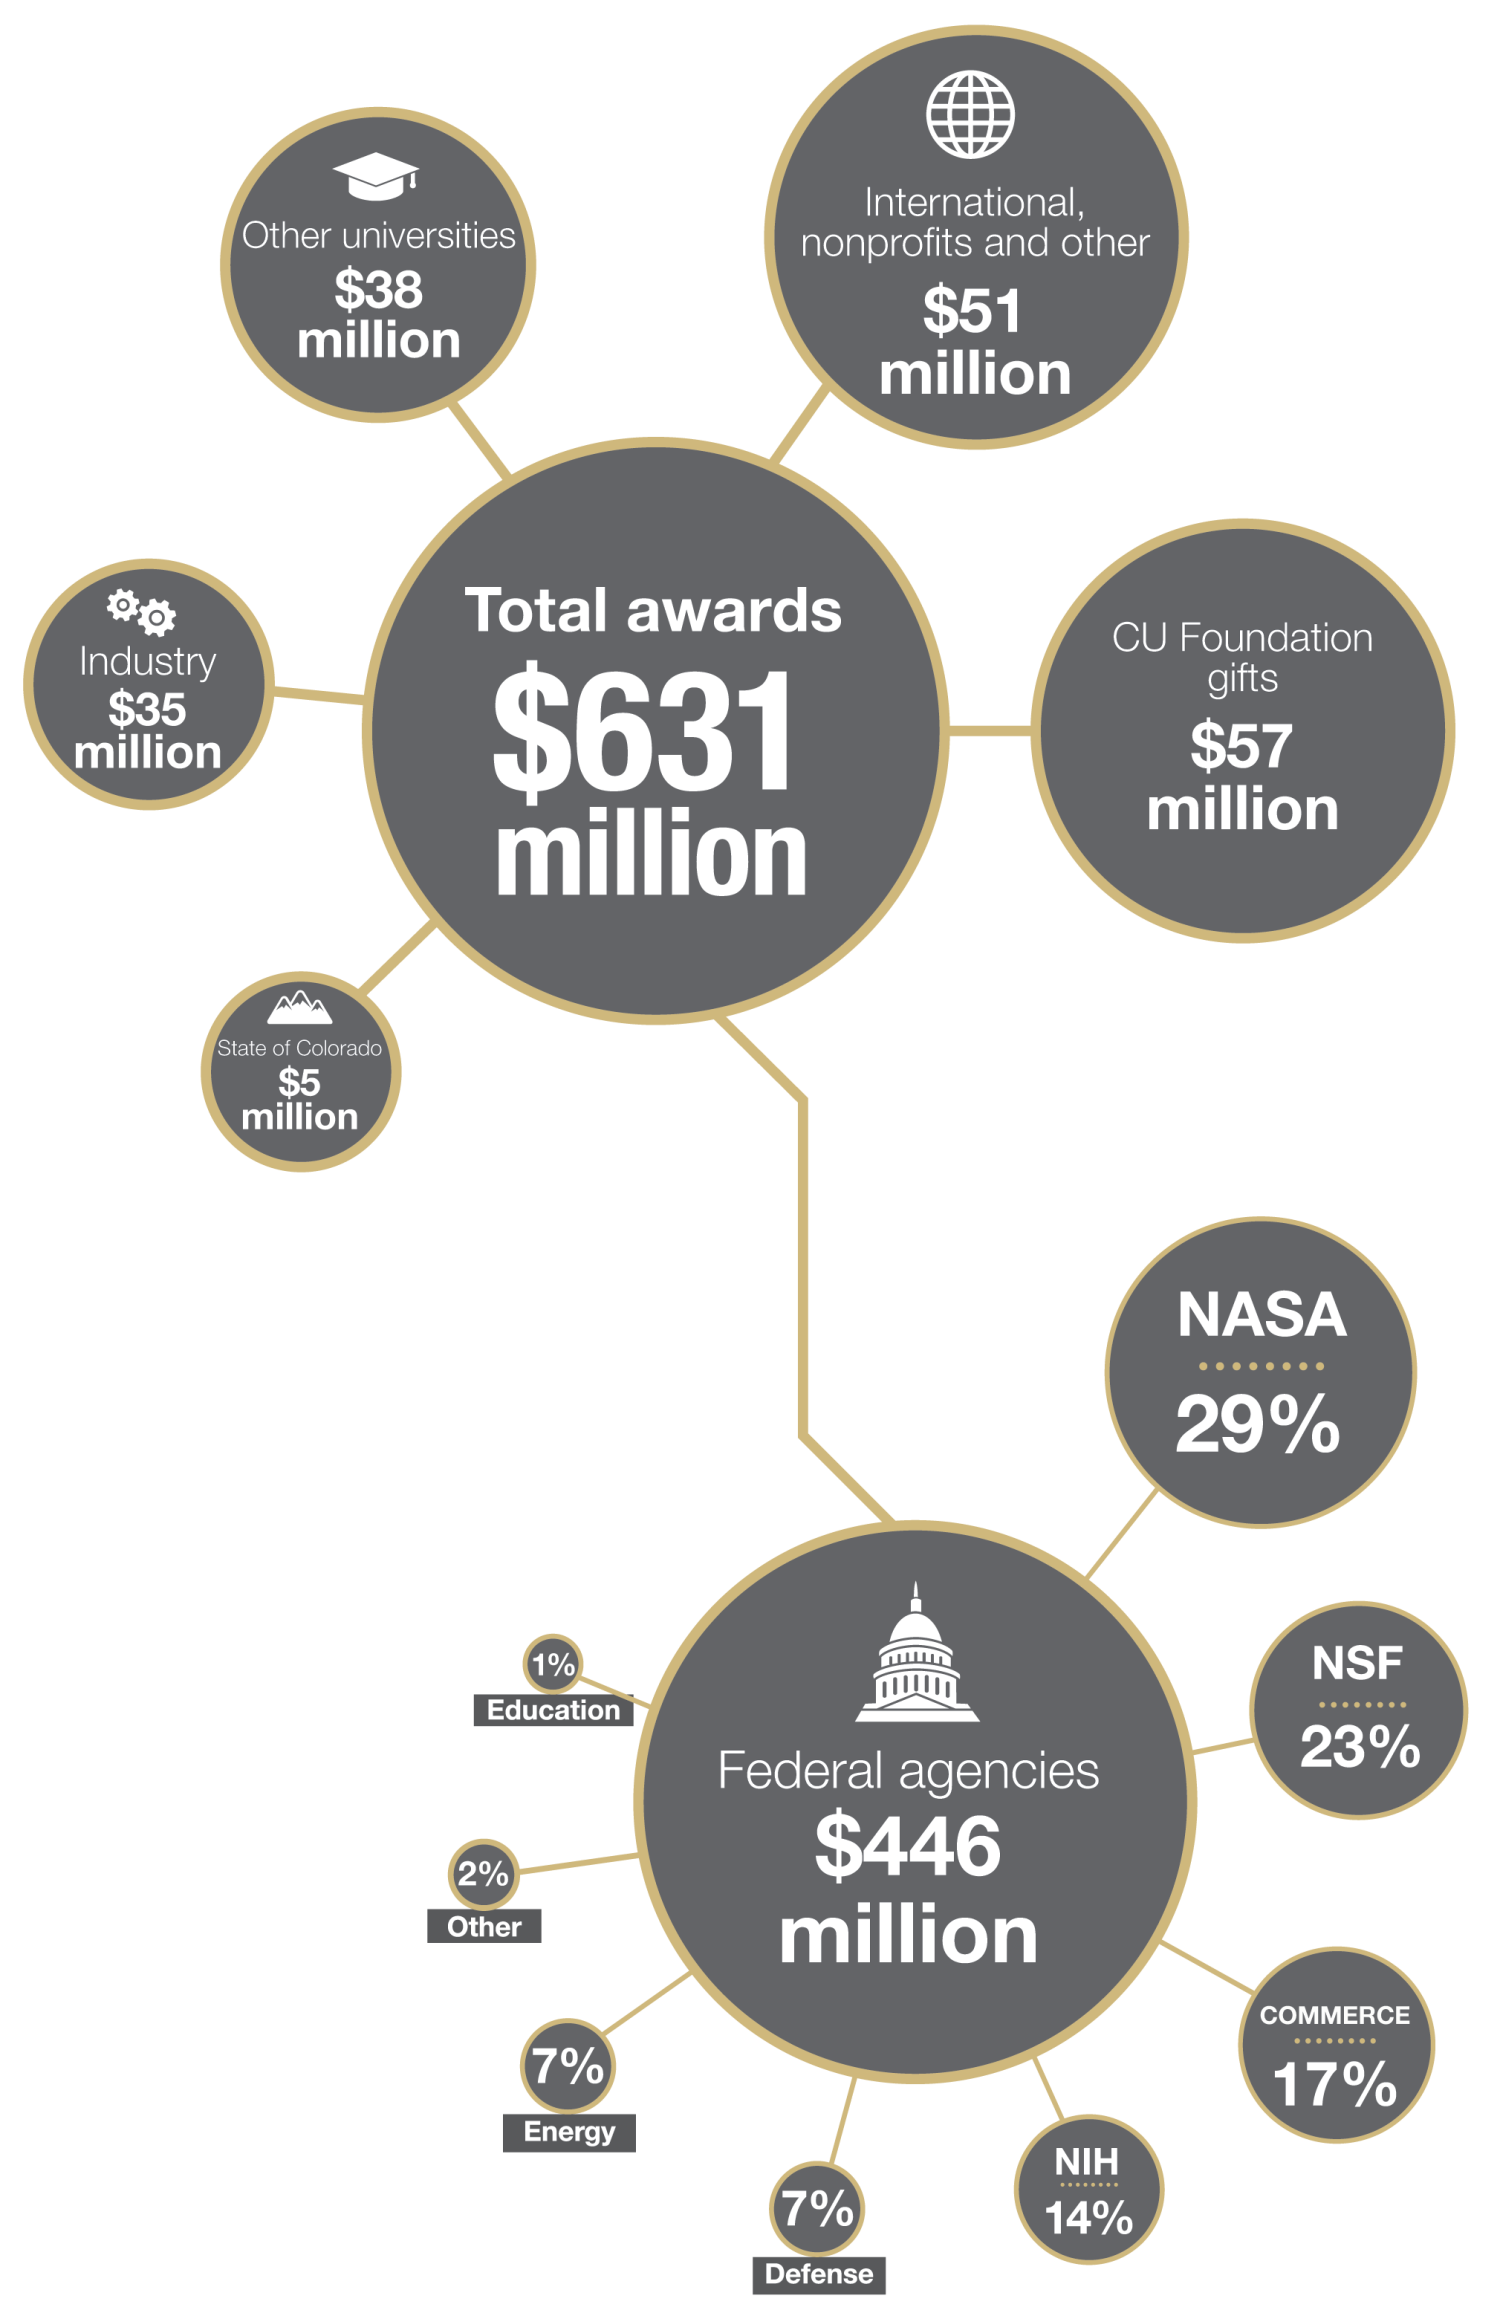 Research funding highlights